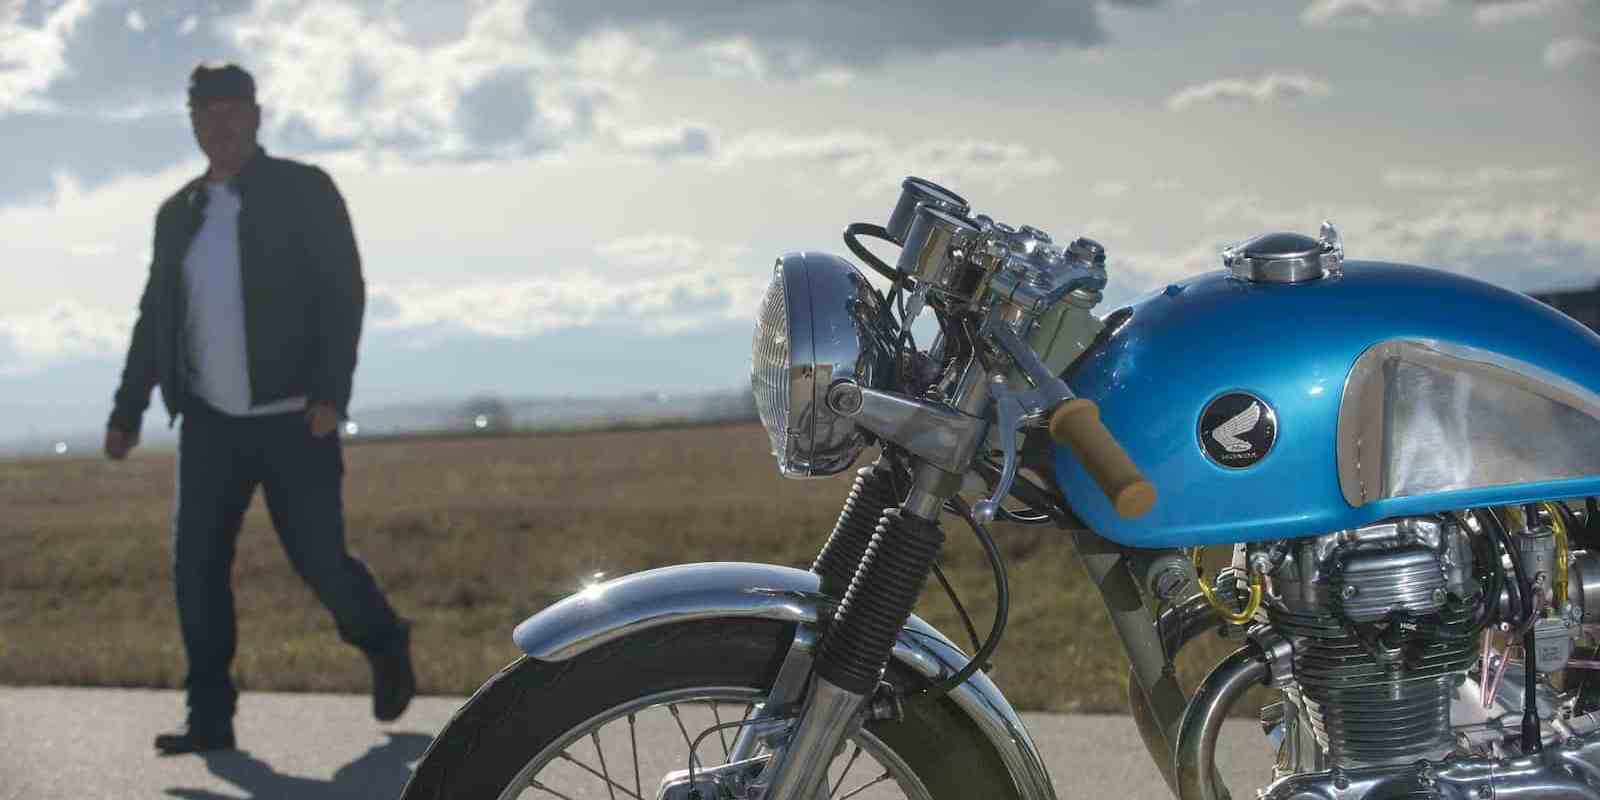 Hooked on Hondas: A 1974 Honda CB360 Cafe Racer Feature